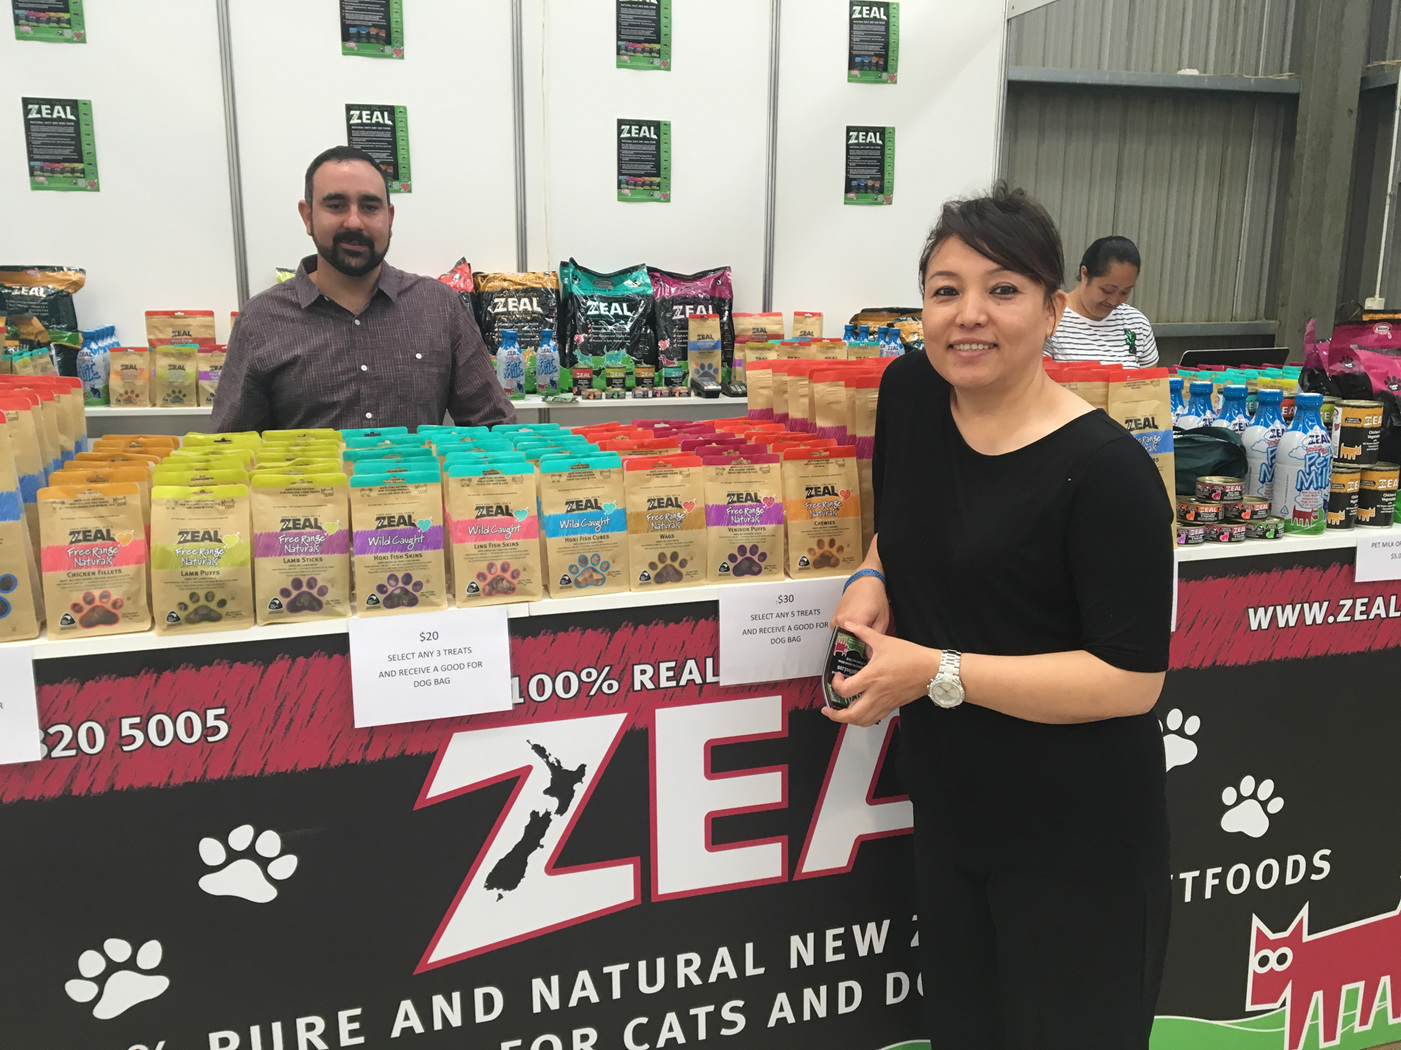 Zeal - 100% natural, NZ made pet food